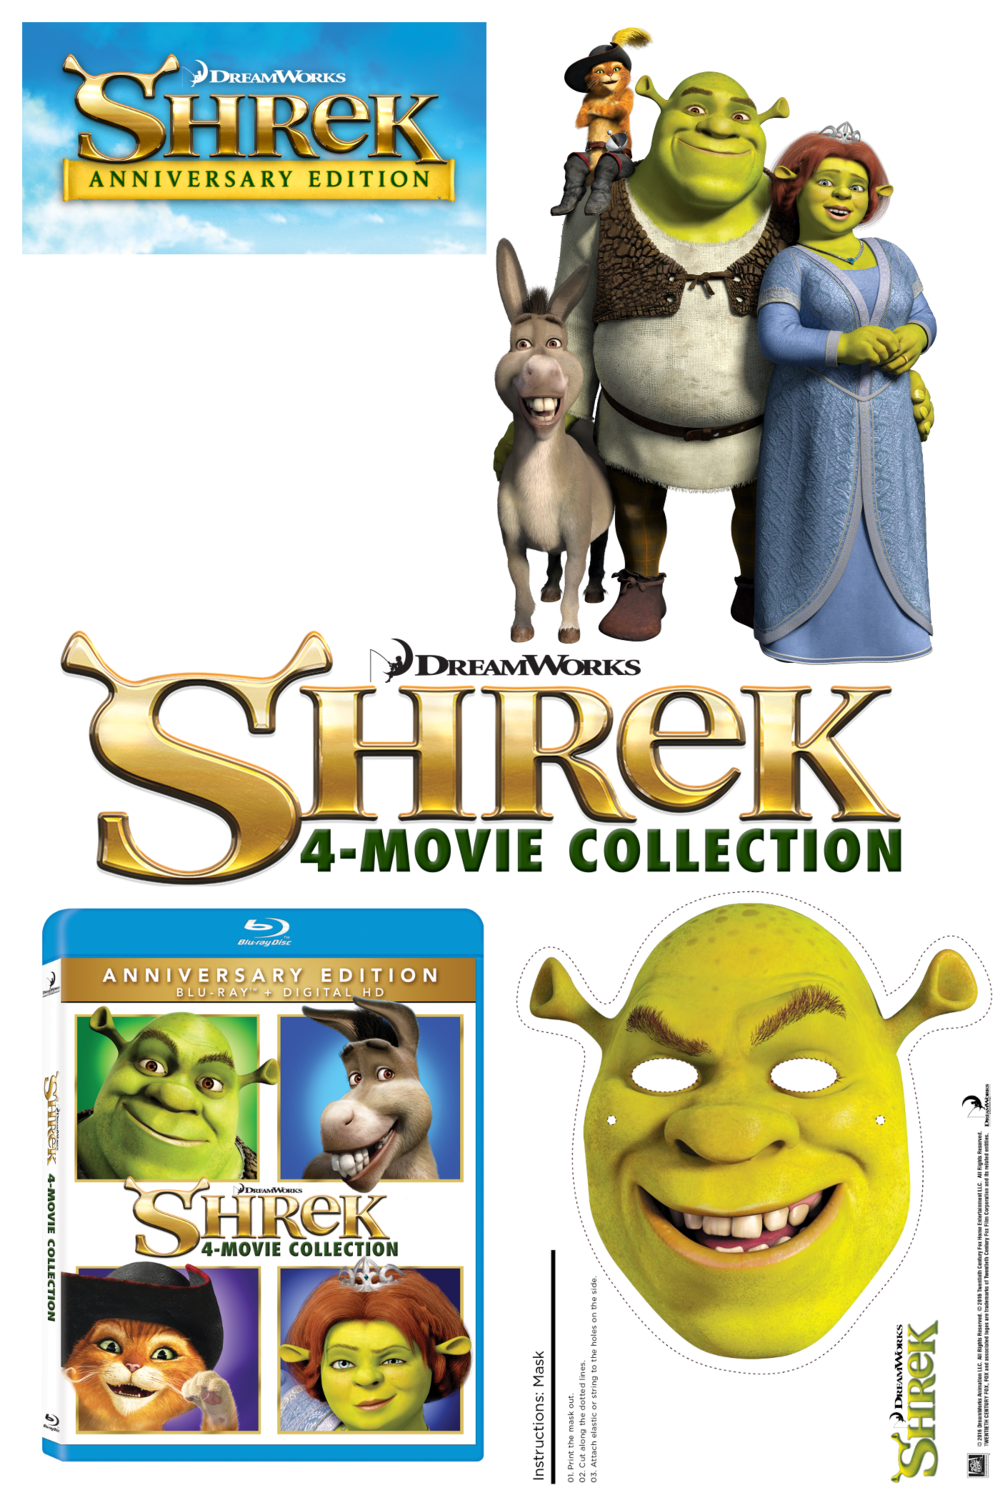 SHREK 15TH ANNIVERSARY {Giveaway} #Shrek15Insiders #SWAMPATHON